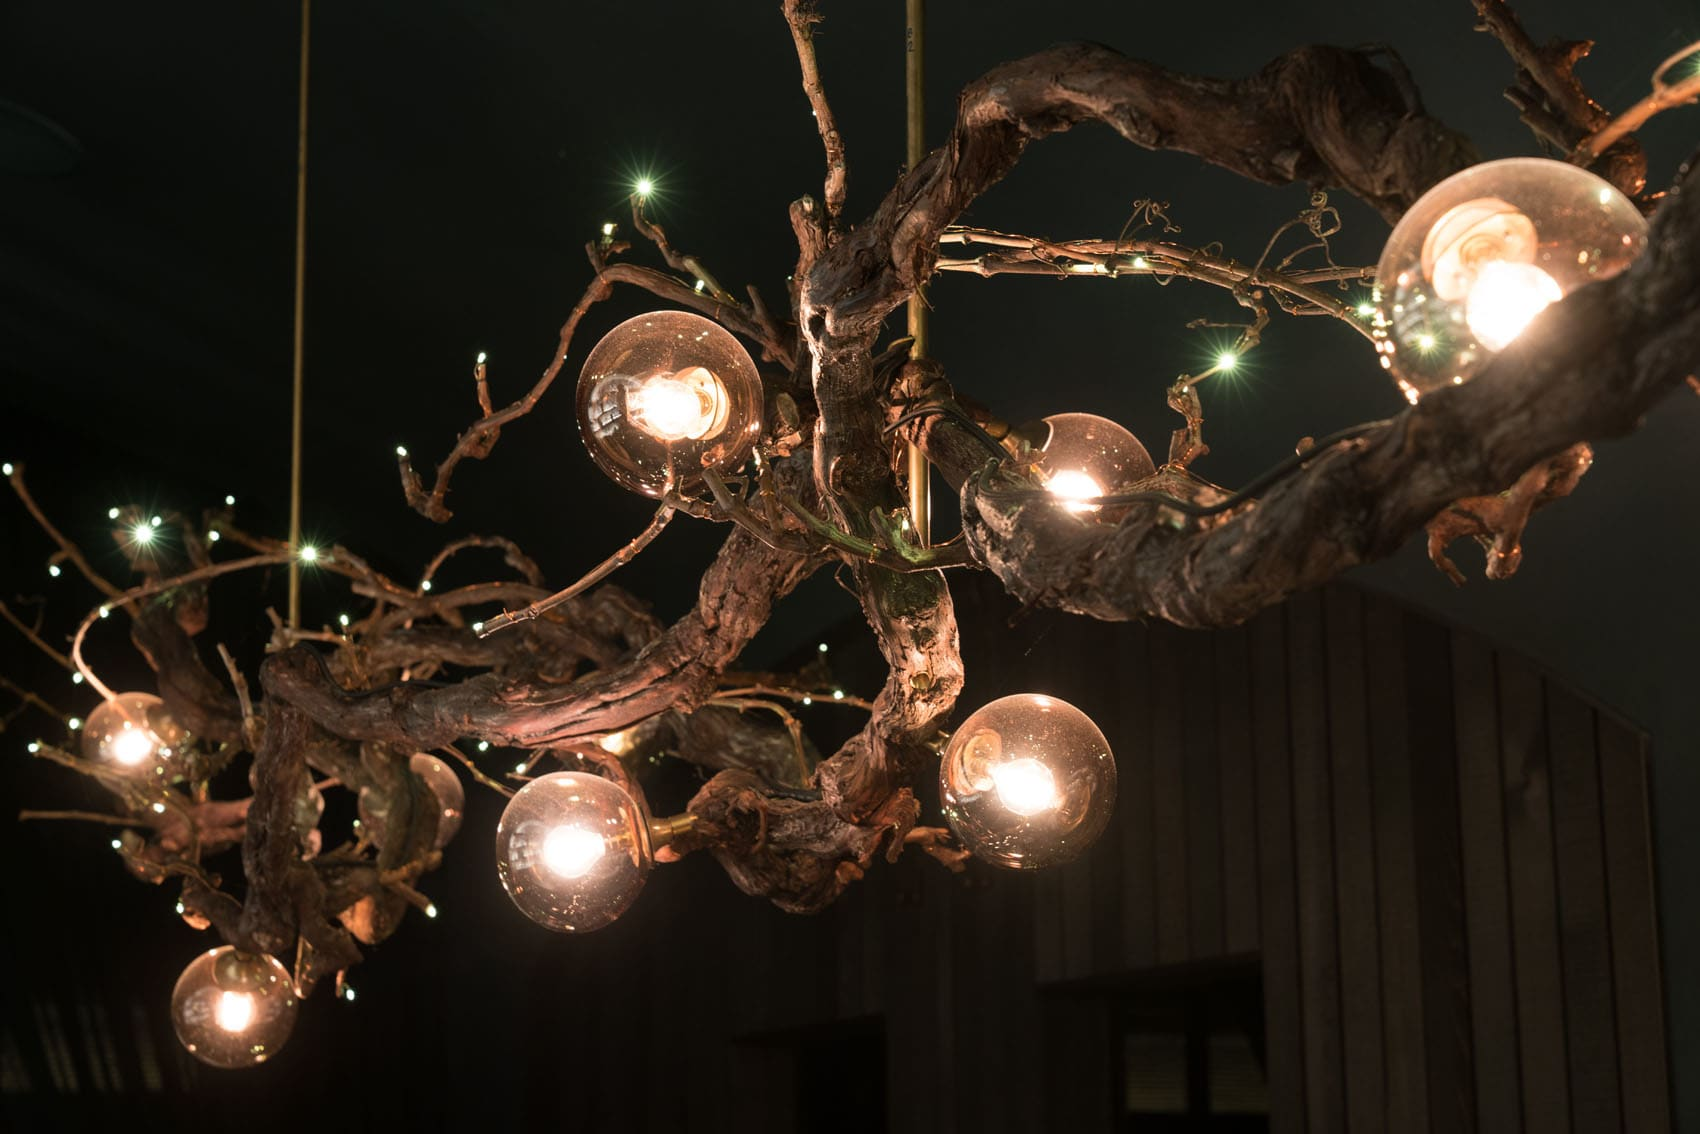 Chandeliers by James Russ at Tantalus Estate, Auckland - Tantalus